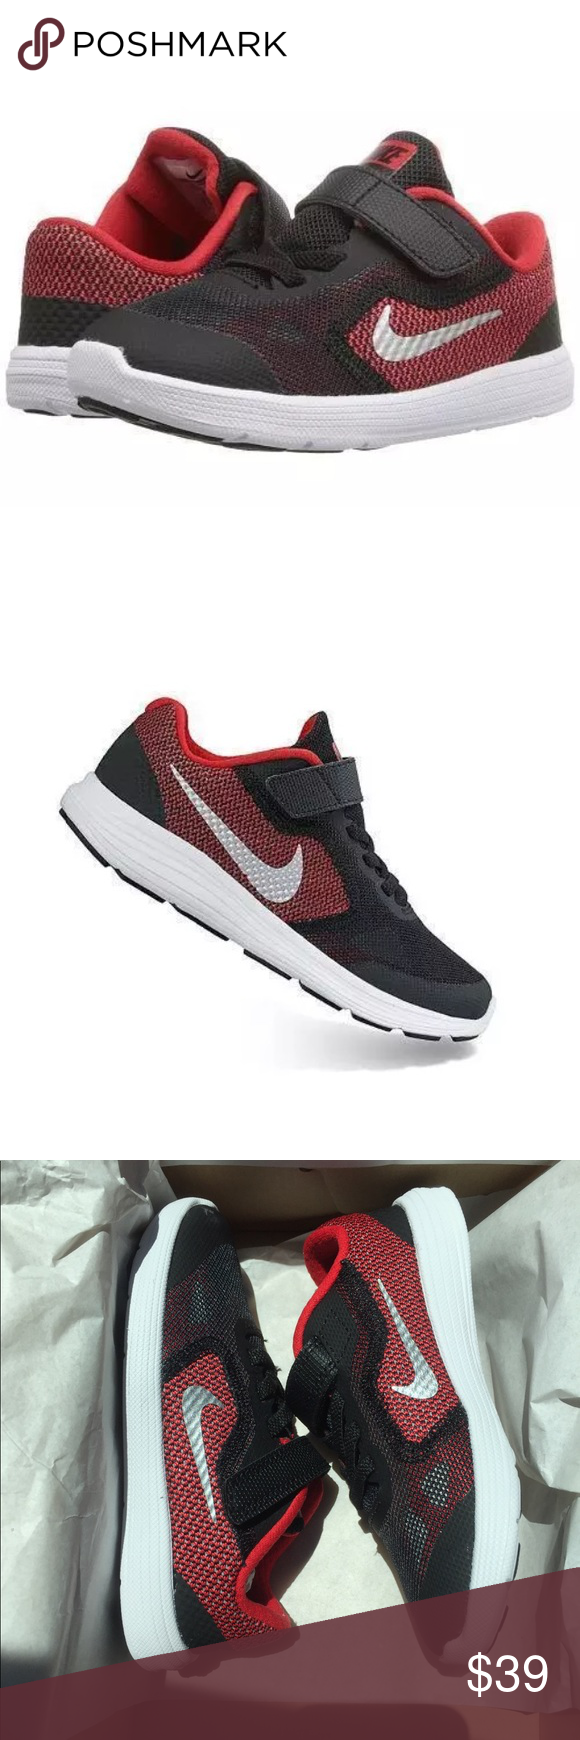 super popular 99e30 85a59 Nike Toddler Boys Revolution 3 Red Black Sneakers New in box. Nike model  819415-600 Nike Shoes Sneakers